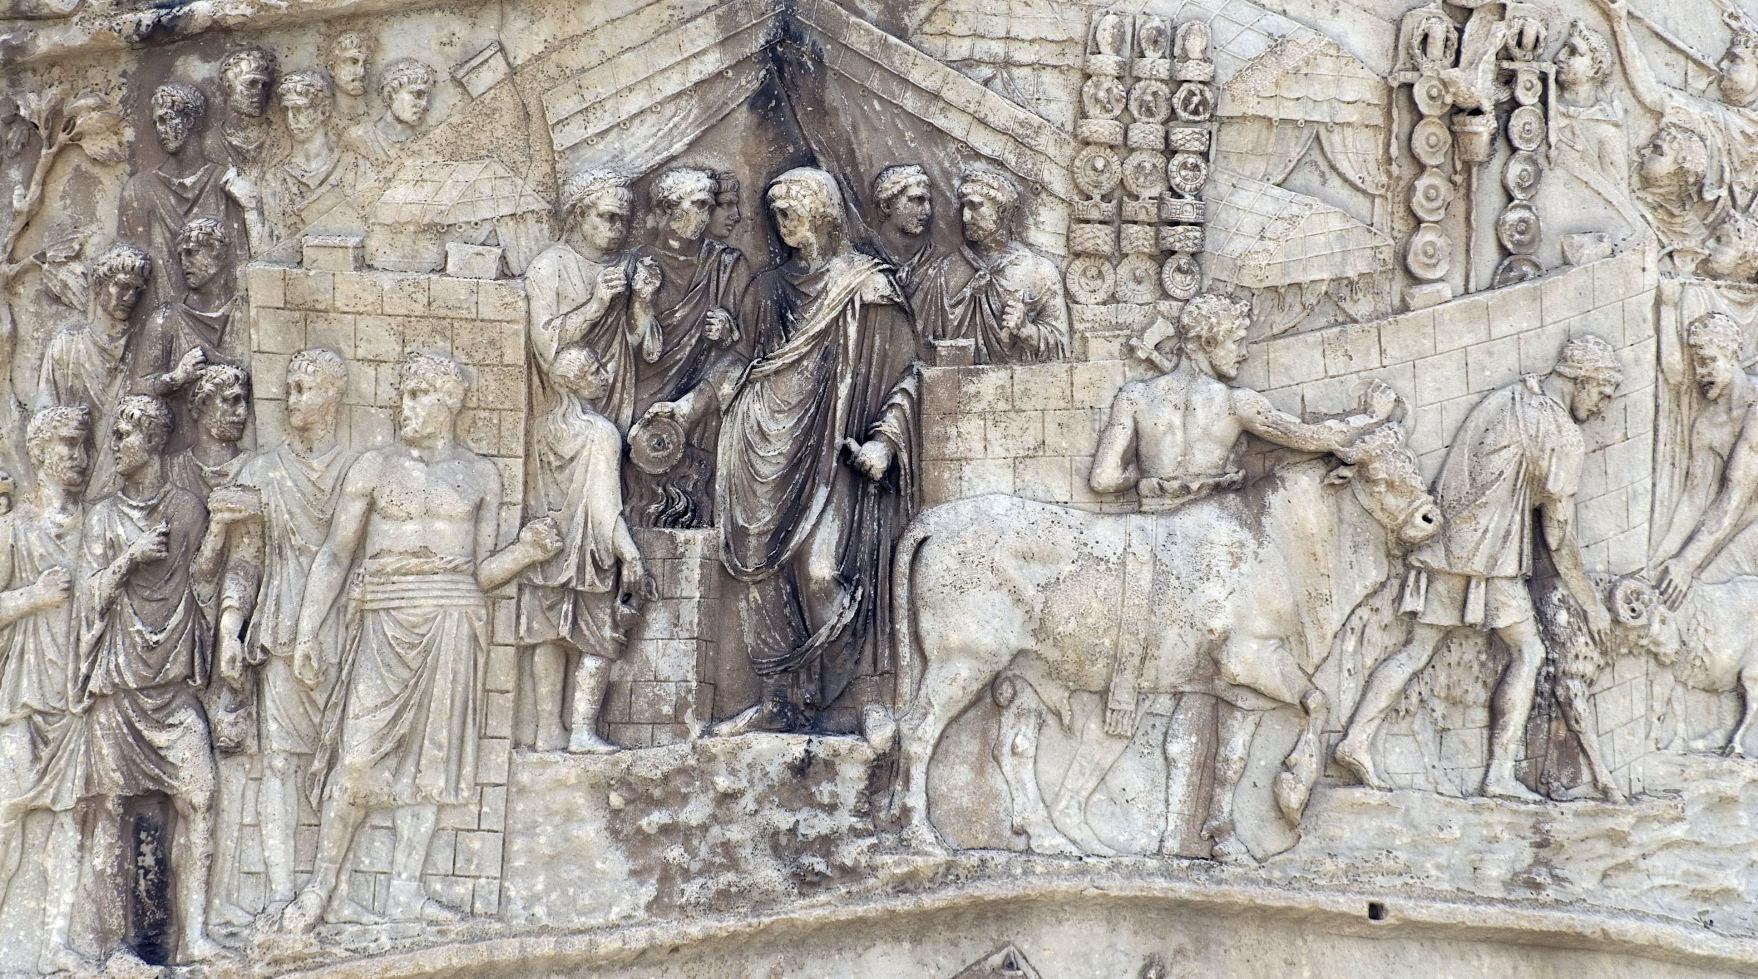 Carving detail, Trajan's Column (in Italian Colonna Traiana)